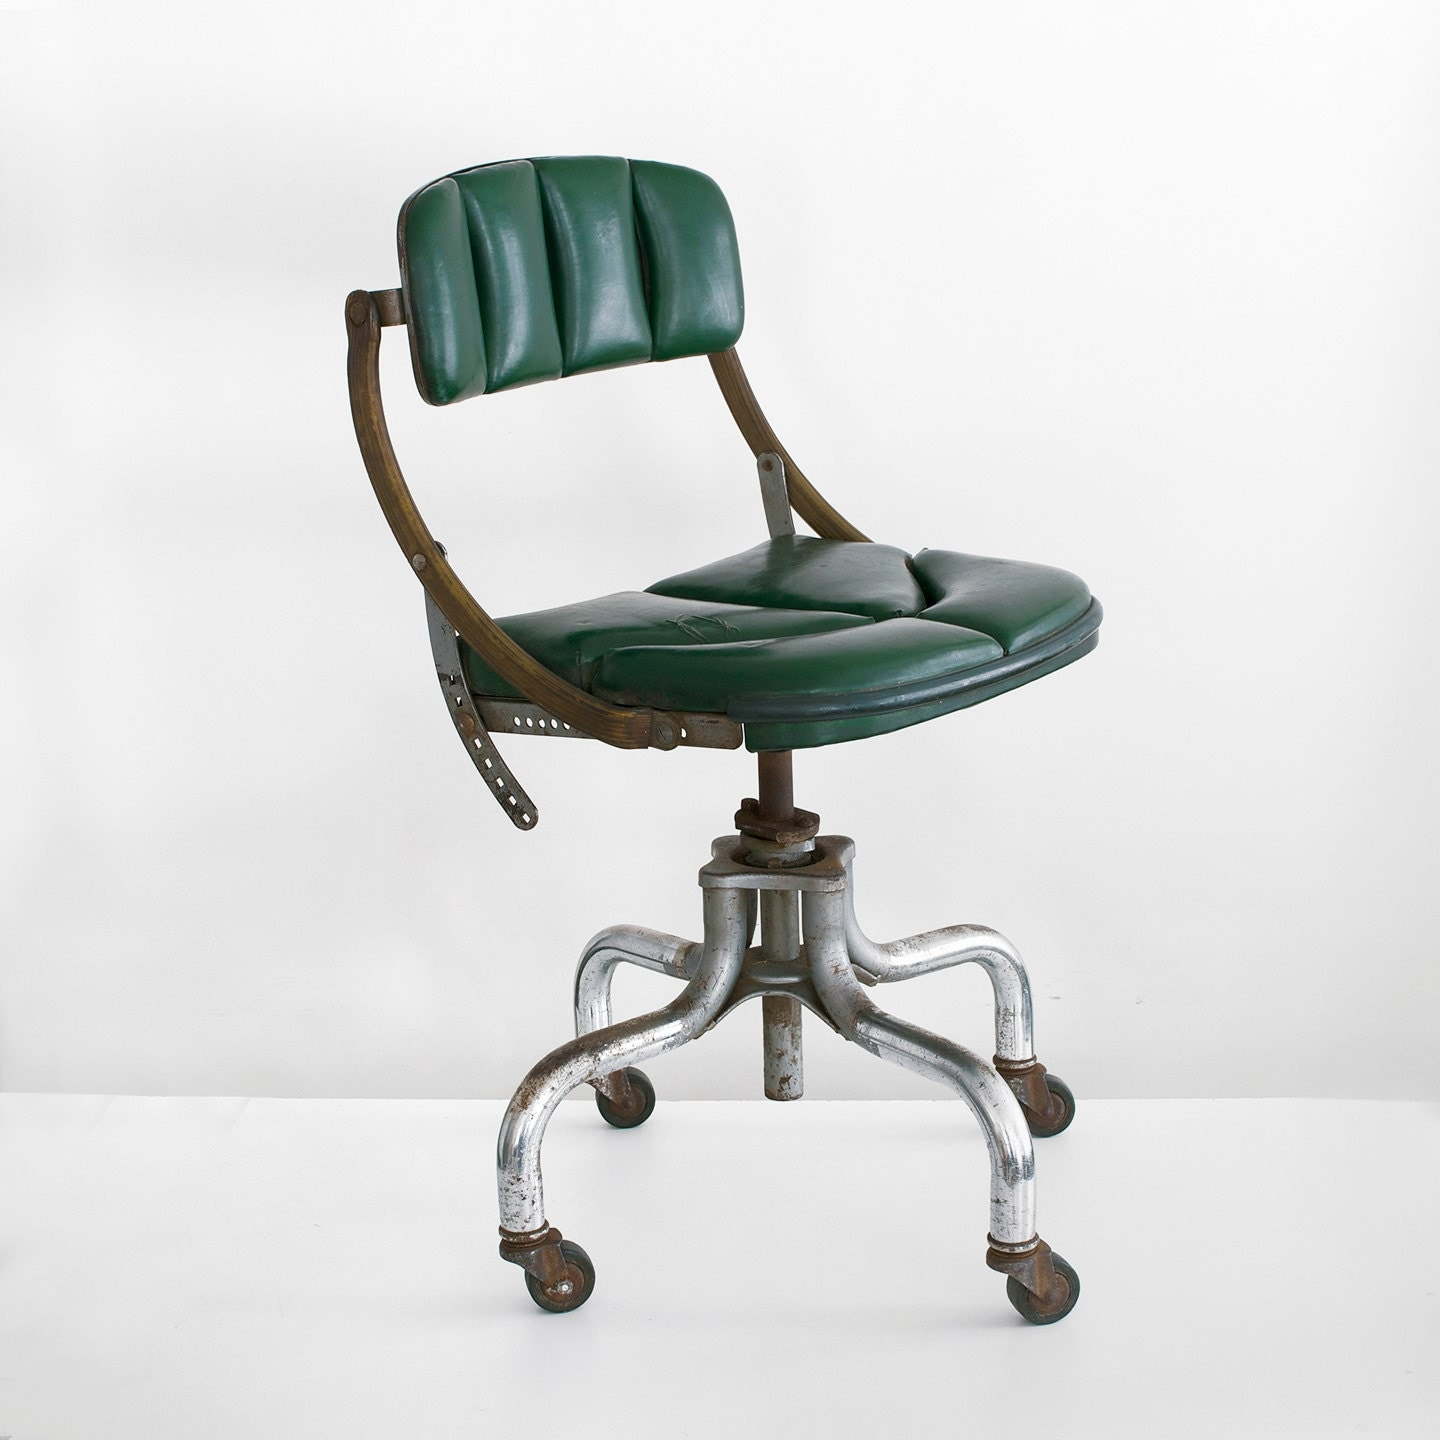 vintage office chair vintage do more chair industrial